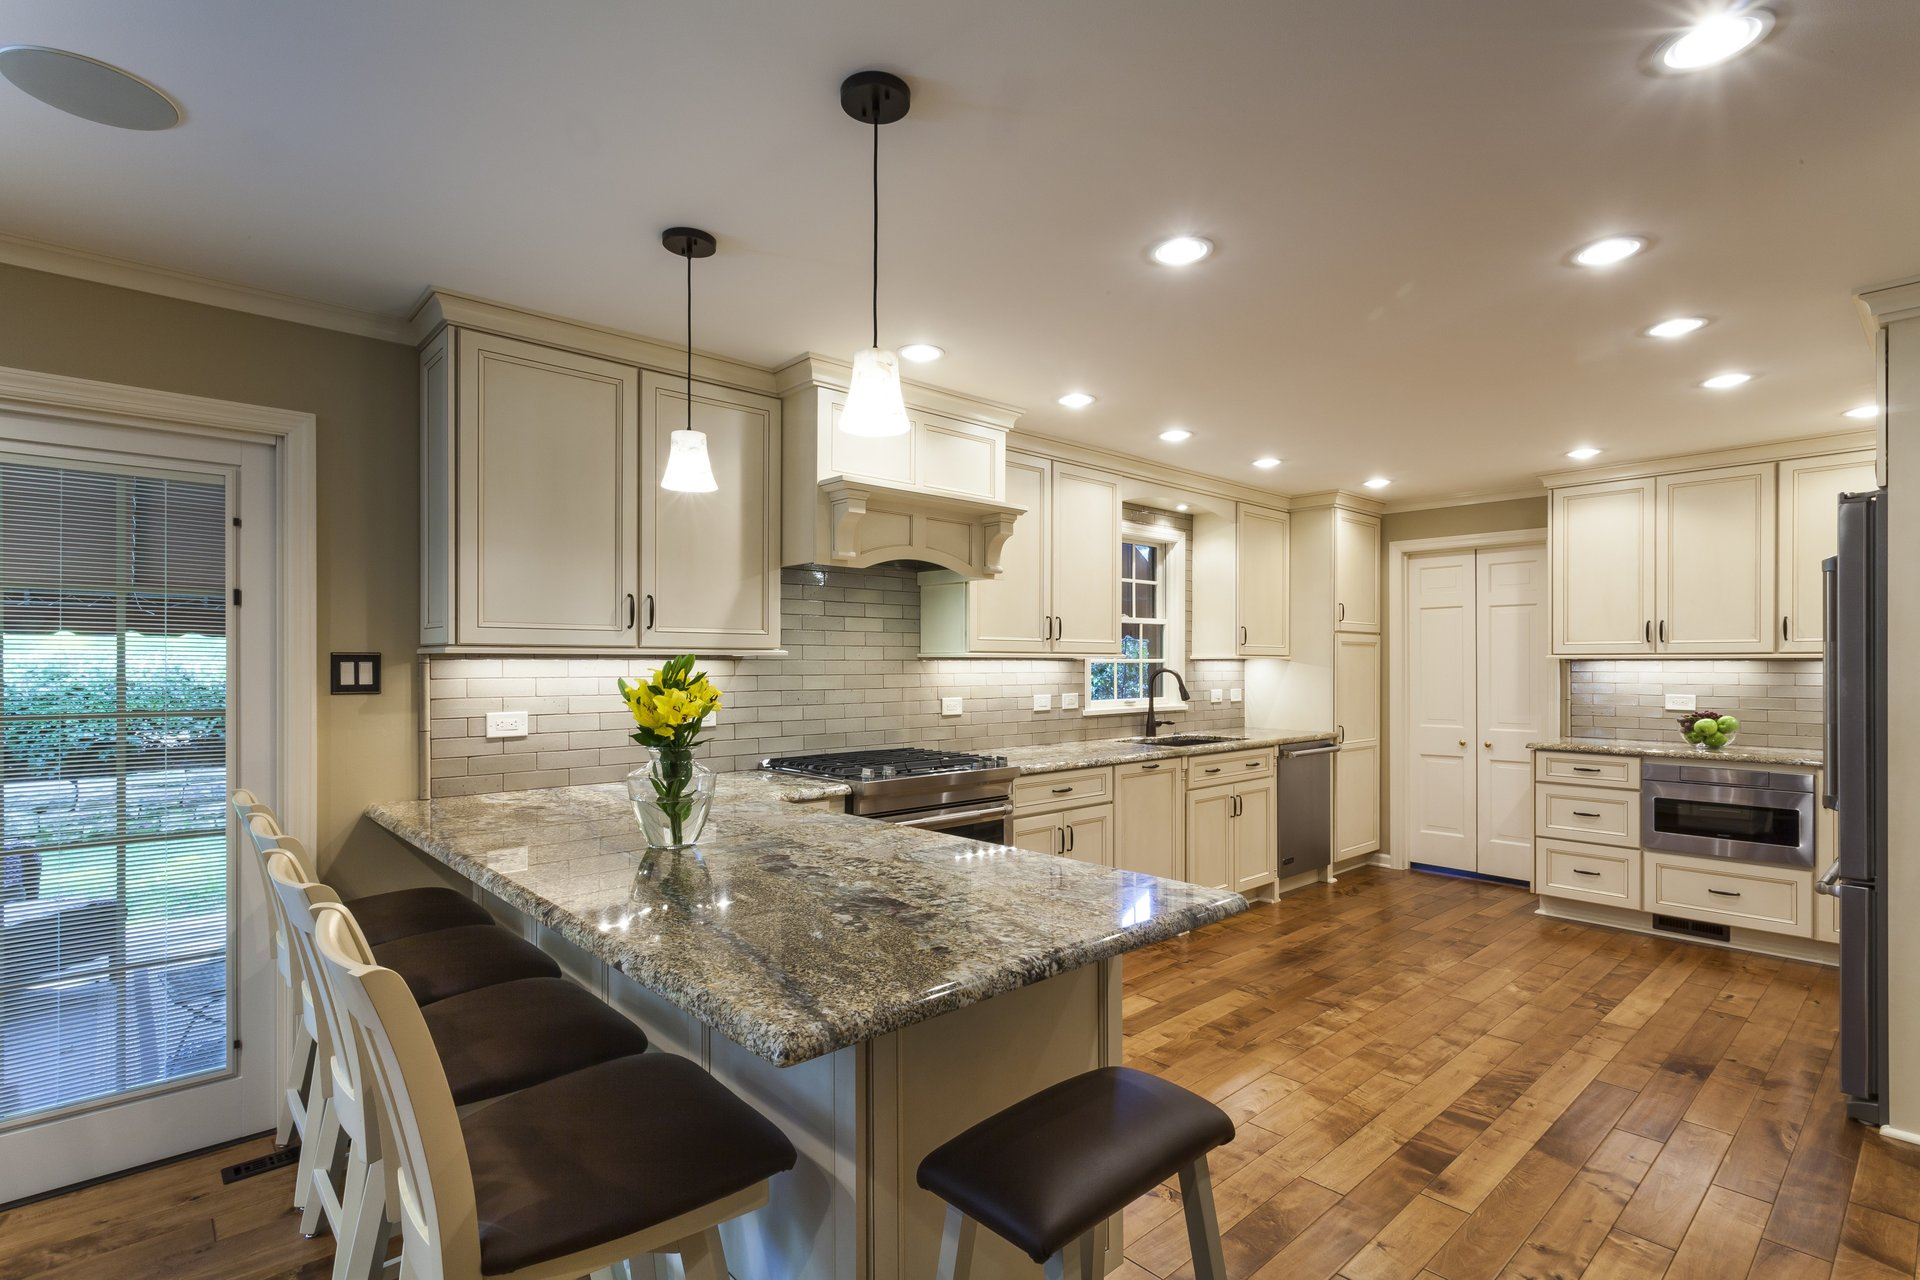 Jacob evans kitchen bath design services pittsburgh pa for Bathroom remodeling pittsburgh pa